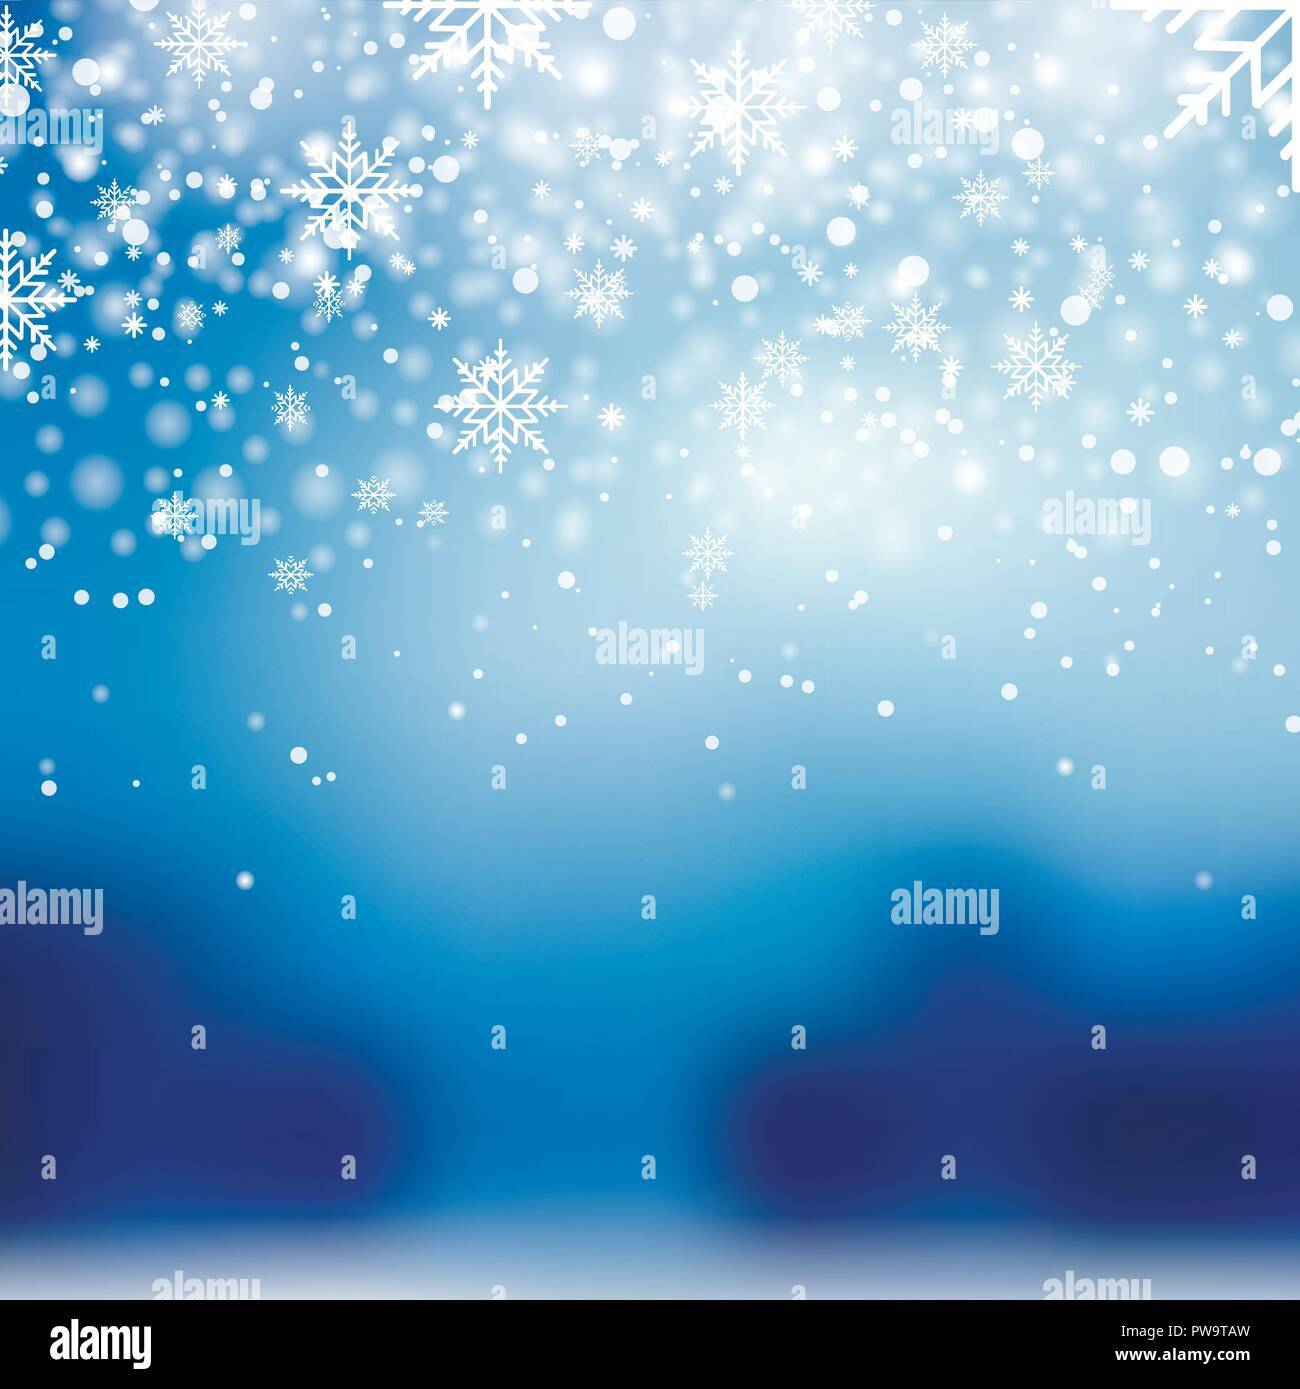 falling shining snow or snowflakes on blue background for happy new year vector